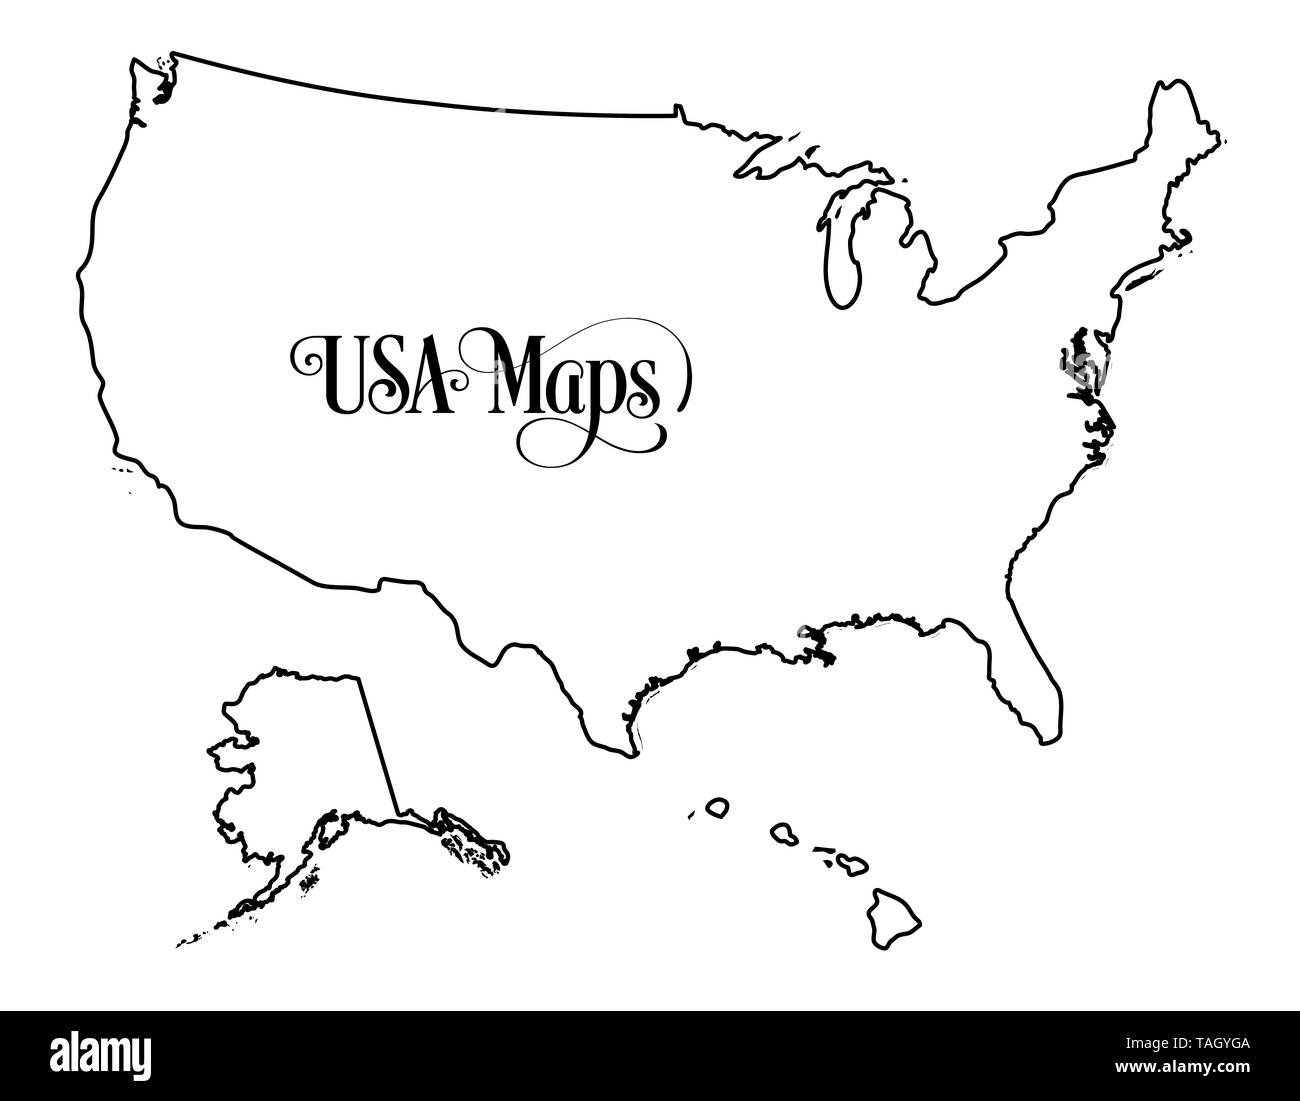 Map Of America Outline.Map Of The United States Of America Usa Outline Illustration On